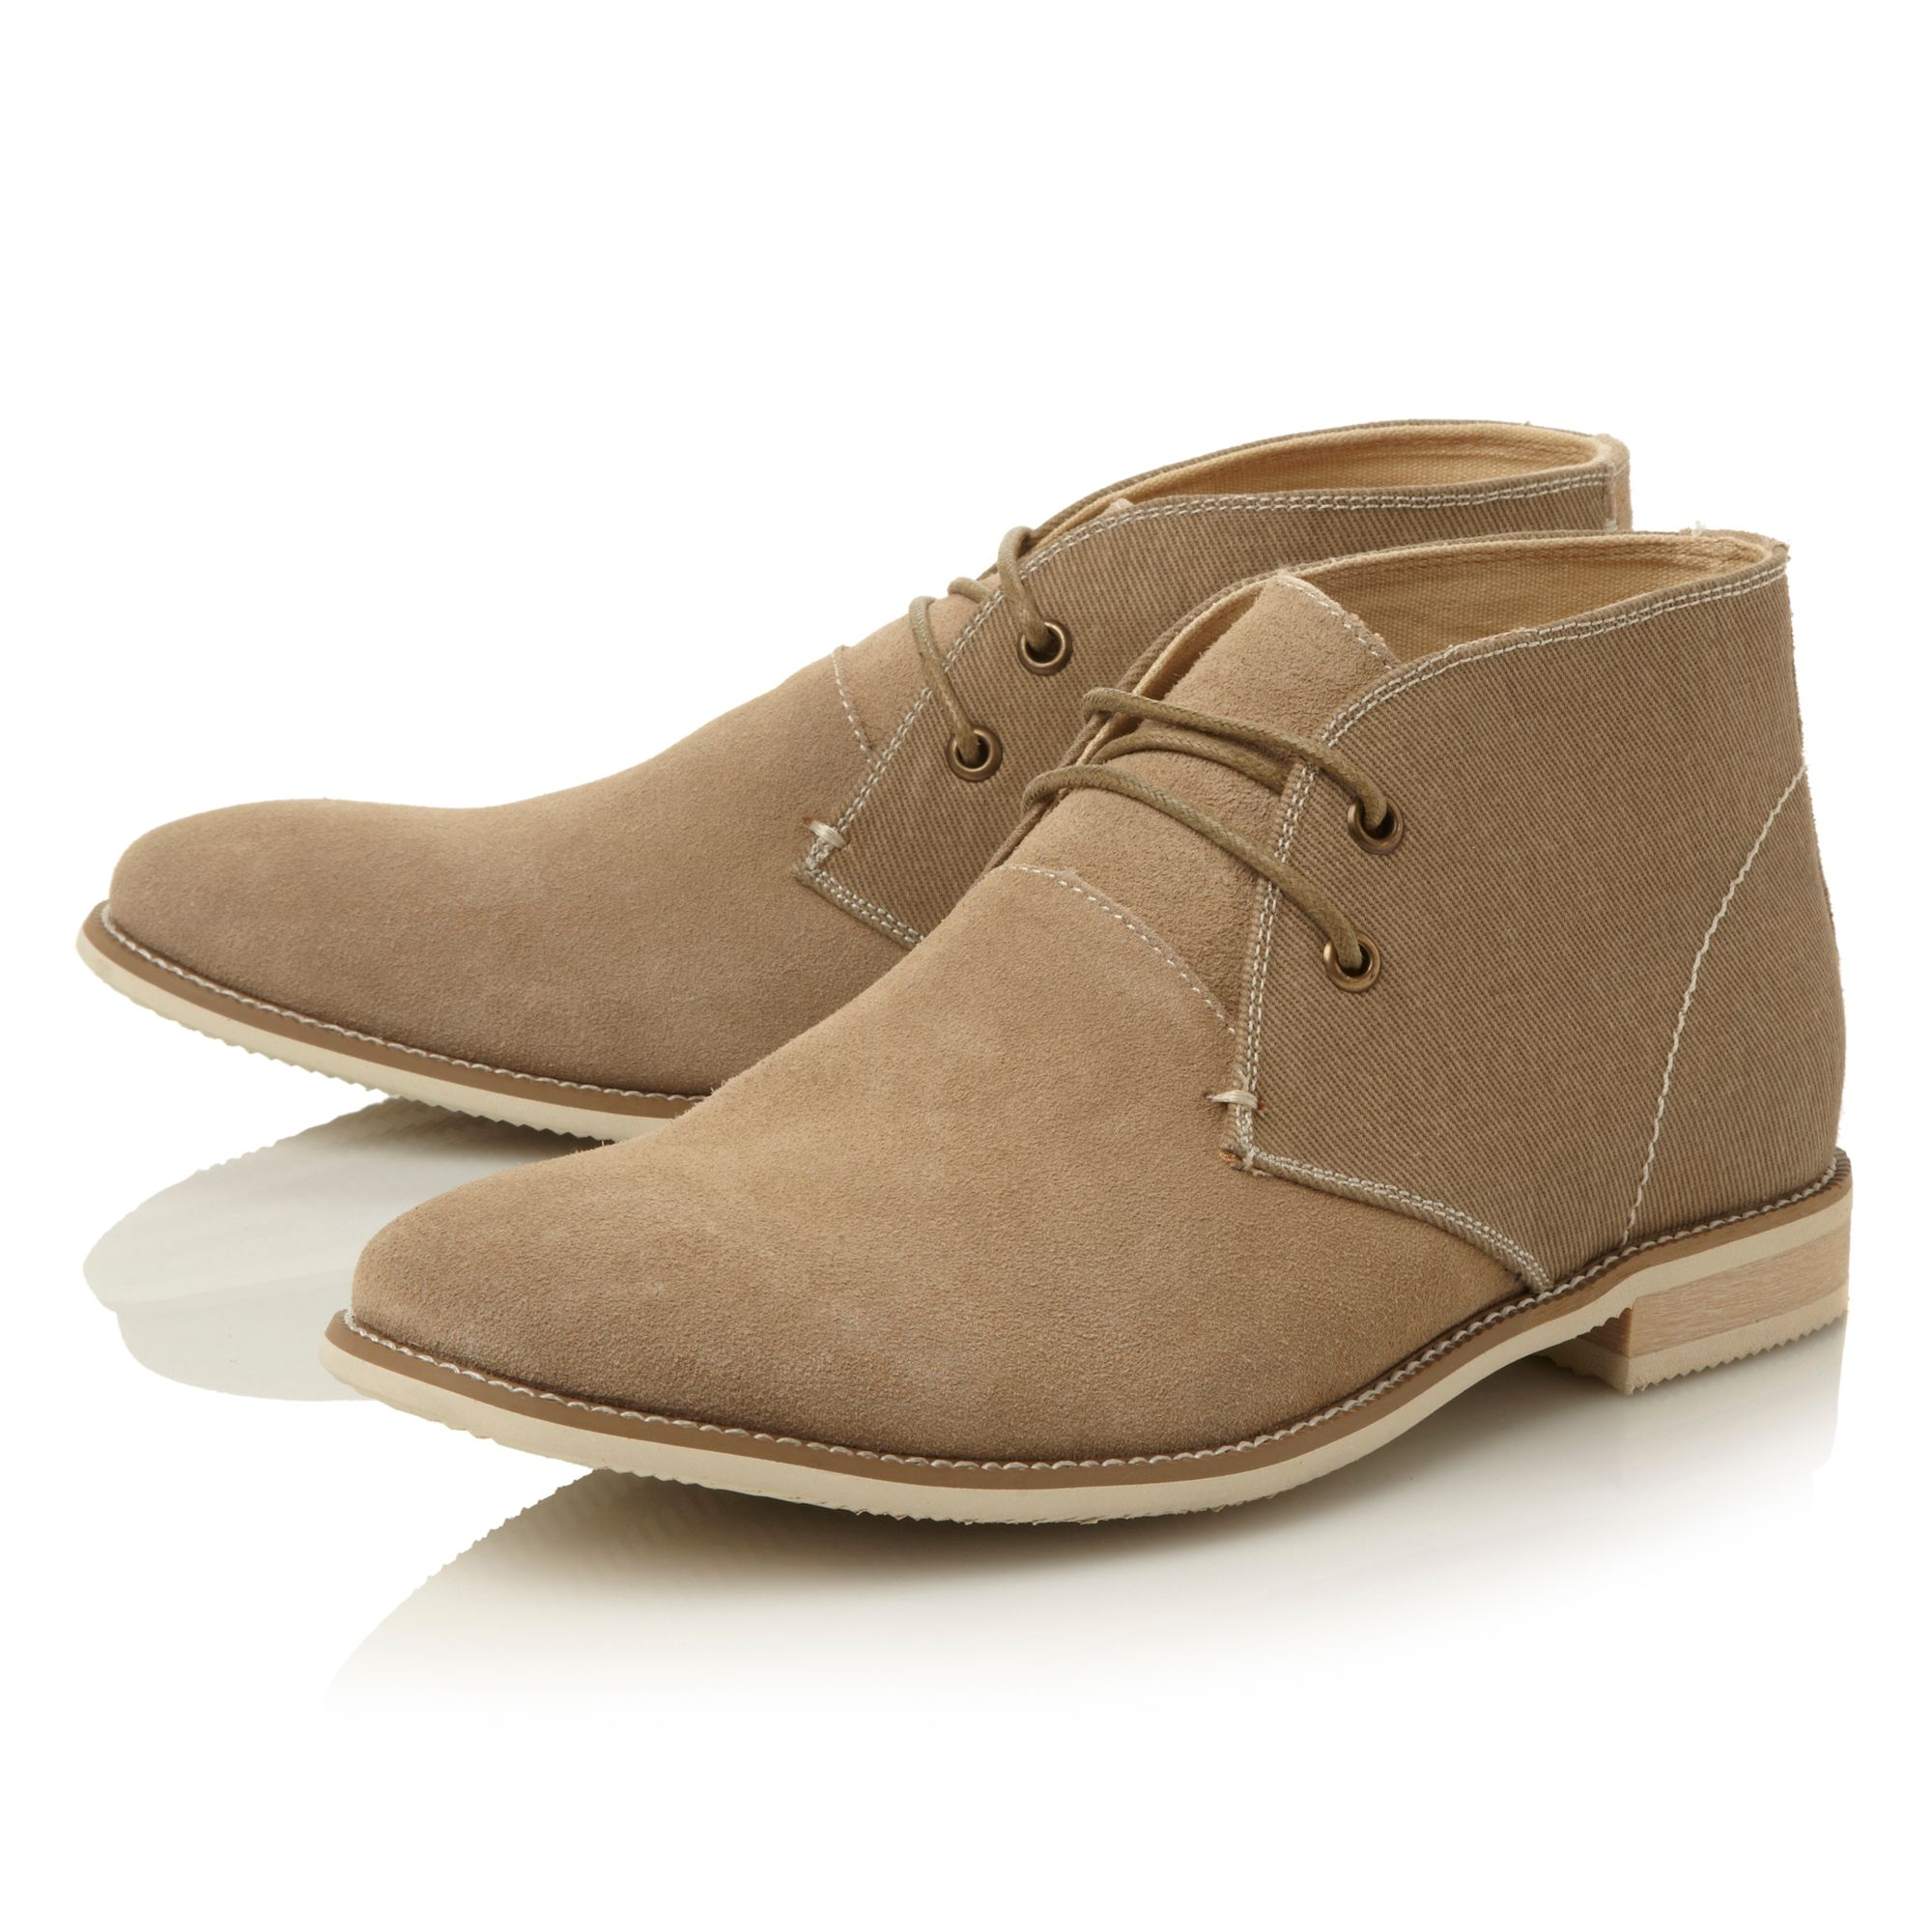 Savantt suede desert boot